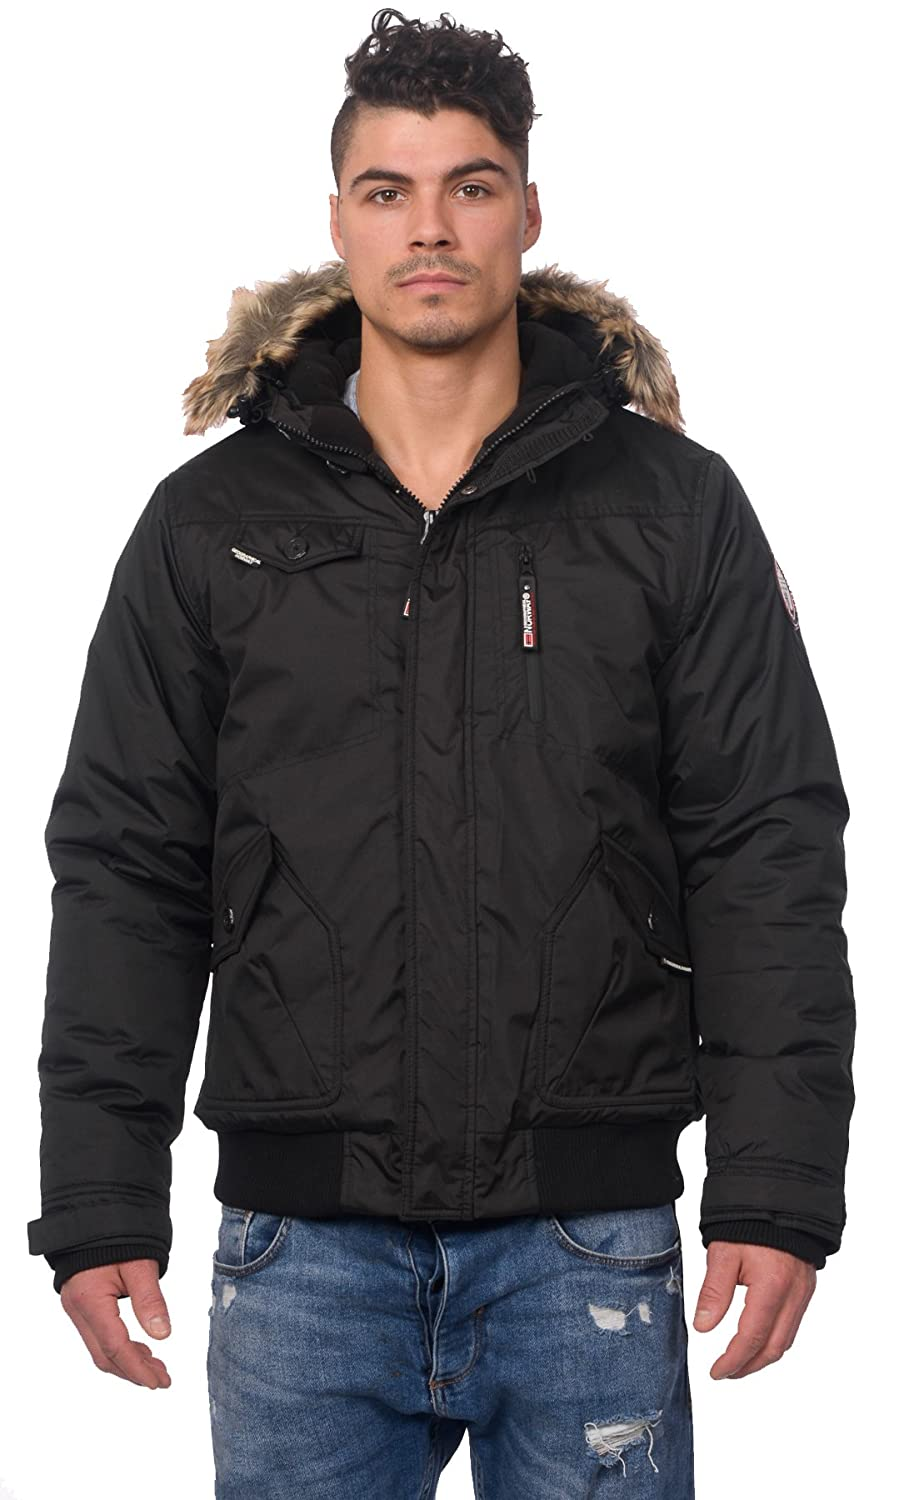 Geographical Norway Men's Bizon Winter Jacket Warm Parka Bomber BIAC_BIZON